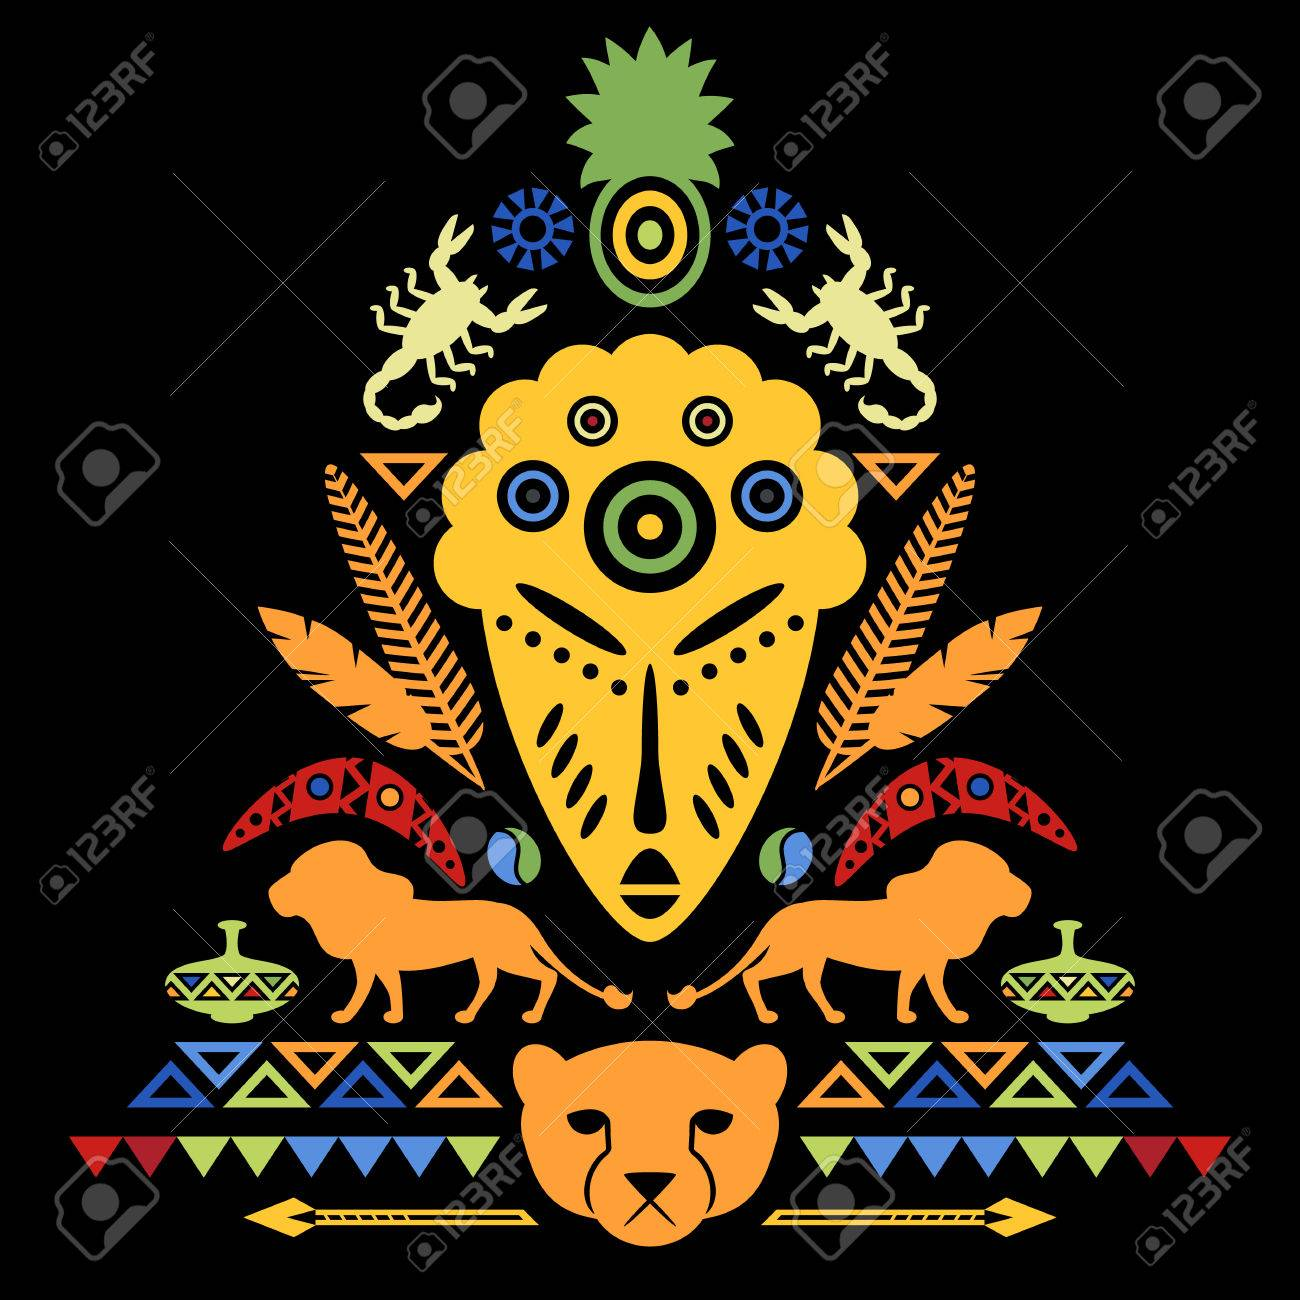 African Abstract Art Tribal Concept Illustration With Mask Animals And Decorative Elements Vector Design